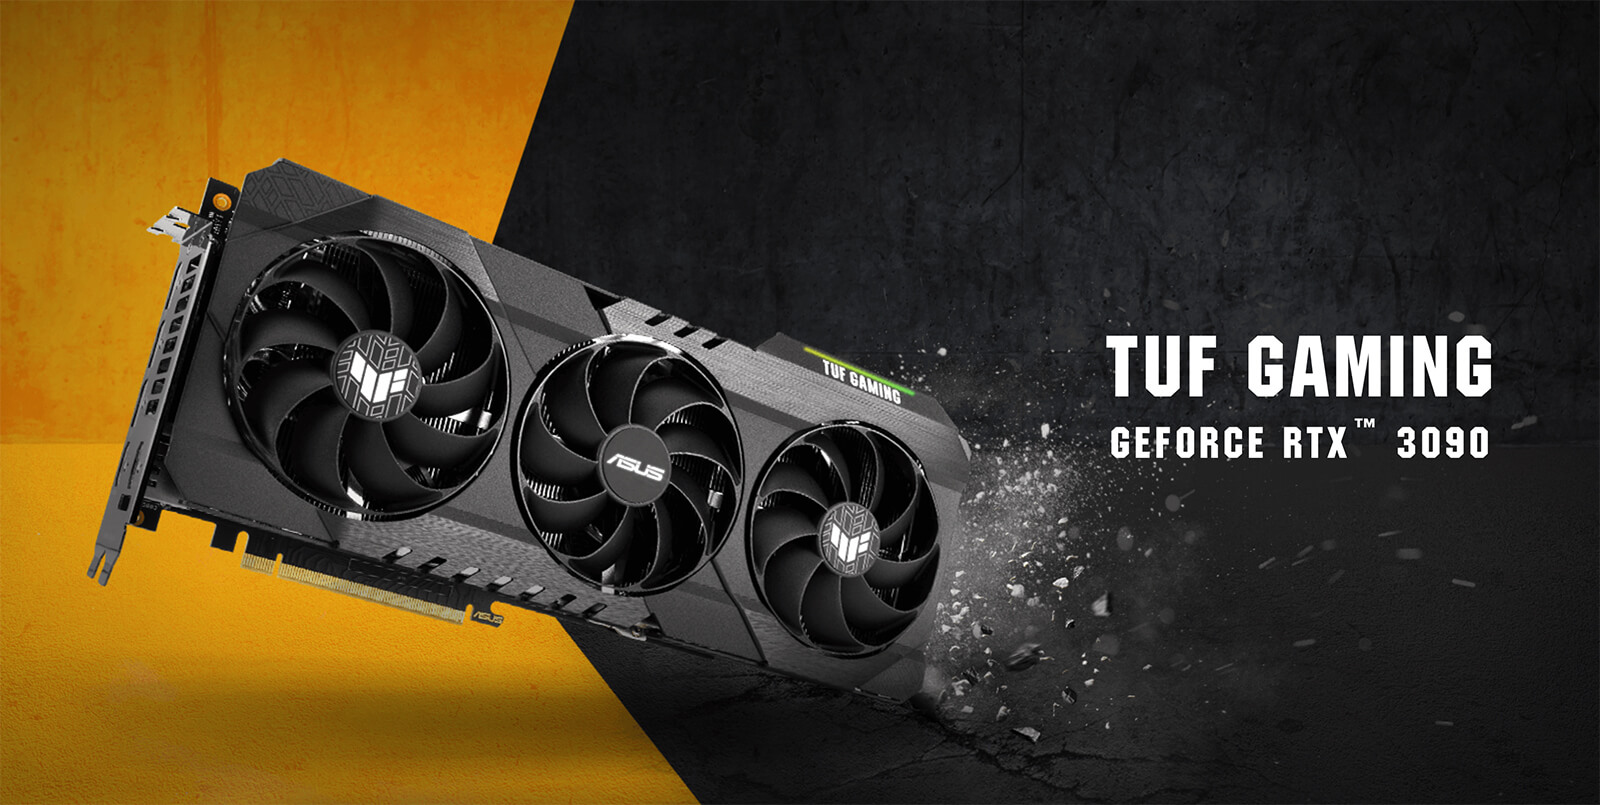 Asus Tuf Gaming Geforce Rtx 3090 Oc 10gb Gddr6x Featured